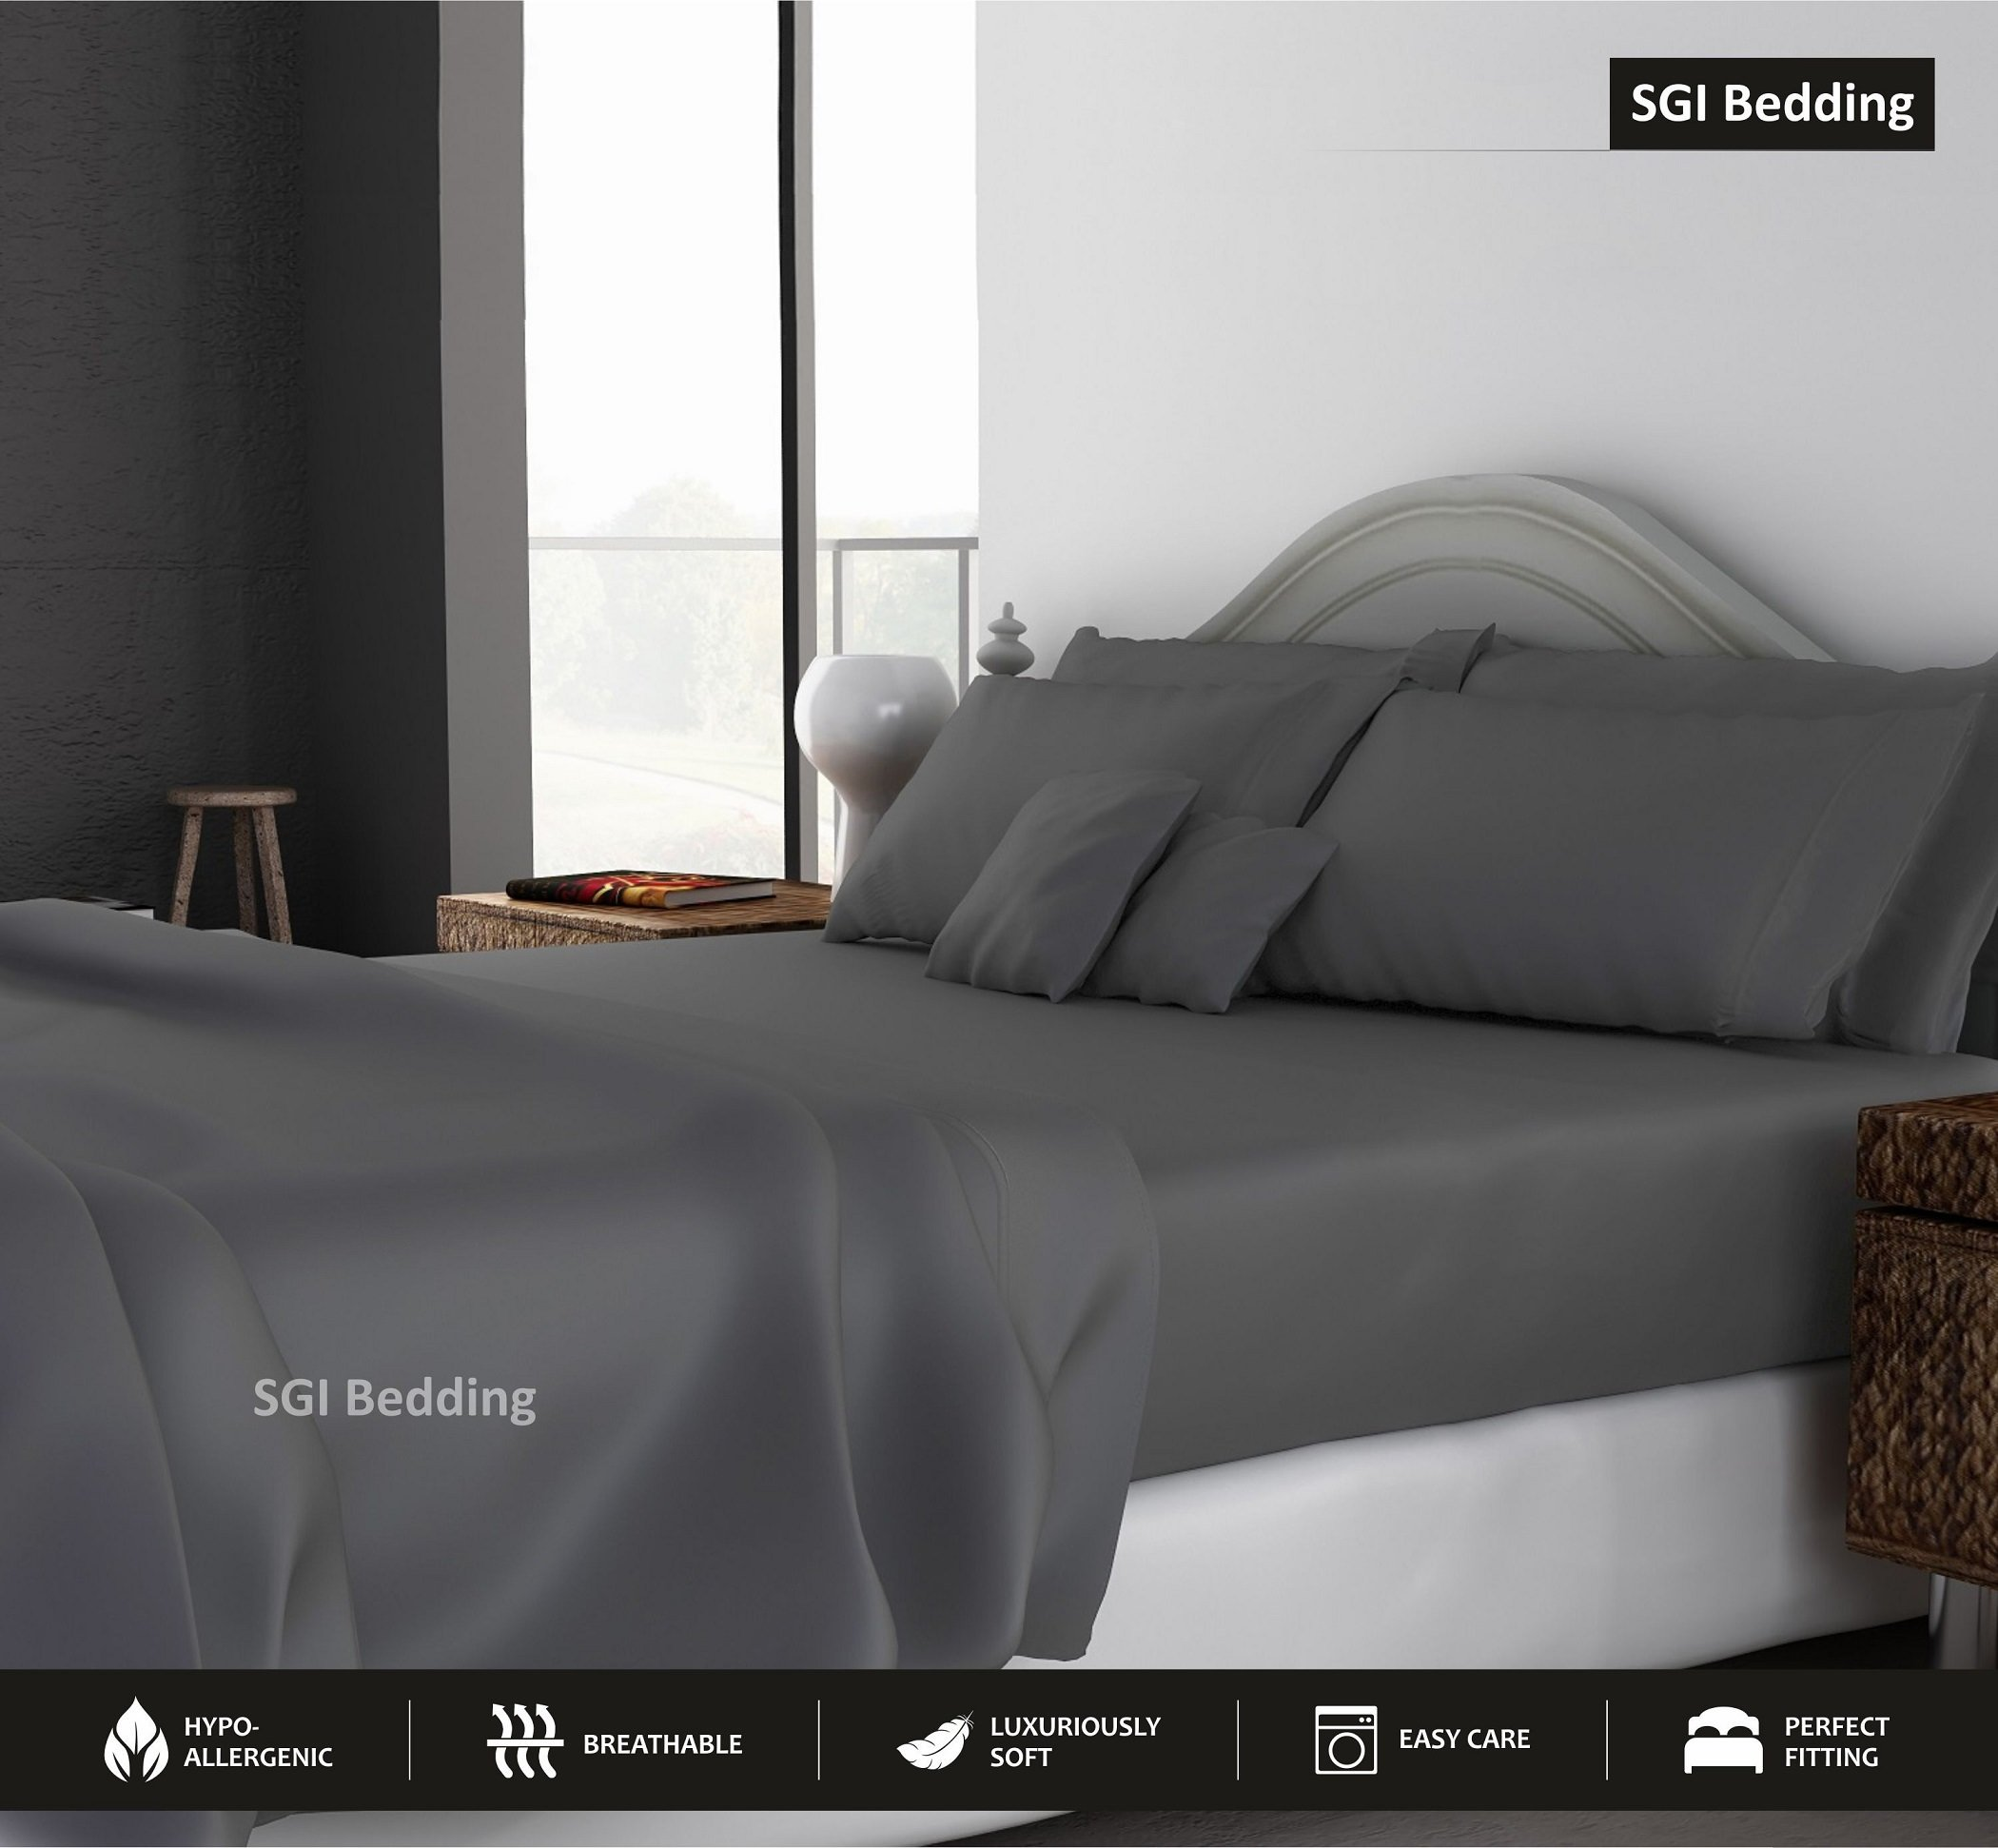 KING SIZE SHEETS LUXURY SOFT 100% EGYPTIAN COTTON - Sheet Set for King Mattress Dark Gray SOLID 600 Thread Count 15'' Deep Pocket # Exotic Bedding Collection